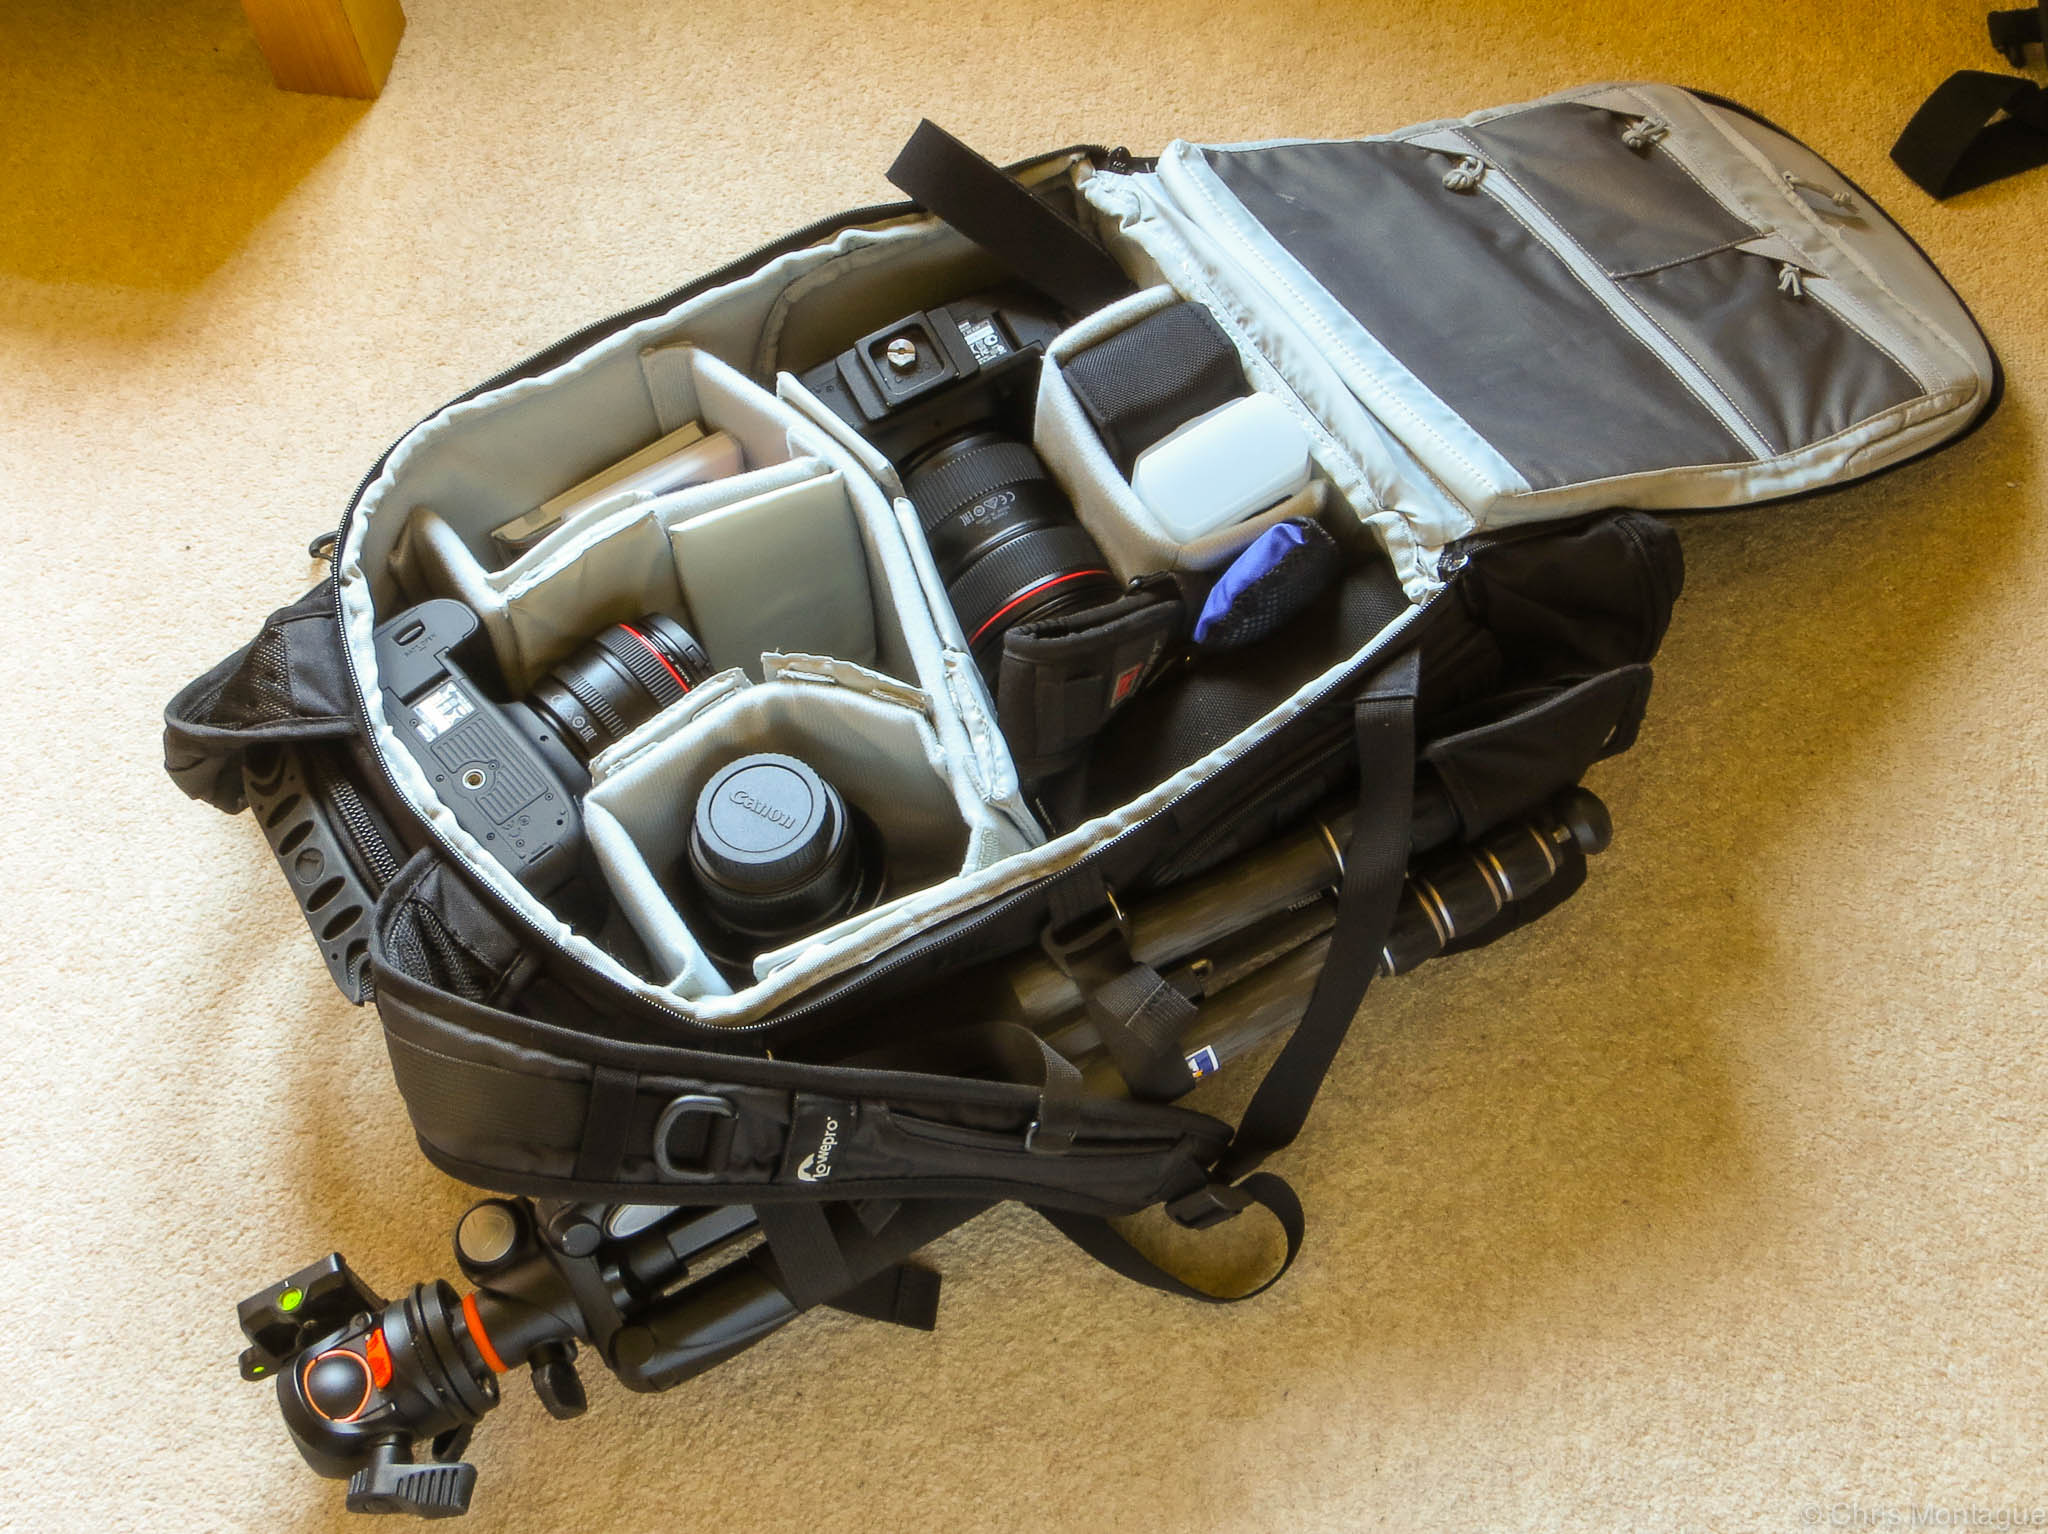 Figure 2: How I configure my bag for wedding photography. Main camera in the side pocket, with a backup 5D MKIII in the top loader section. Only difference is instead of 24-70mm f2.8L II, the 70-200mm f2.8L II would normally be on my main camera, but it's currently being loaned out.